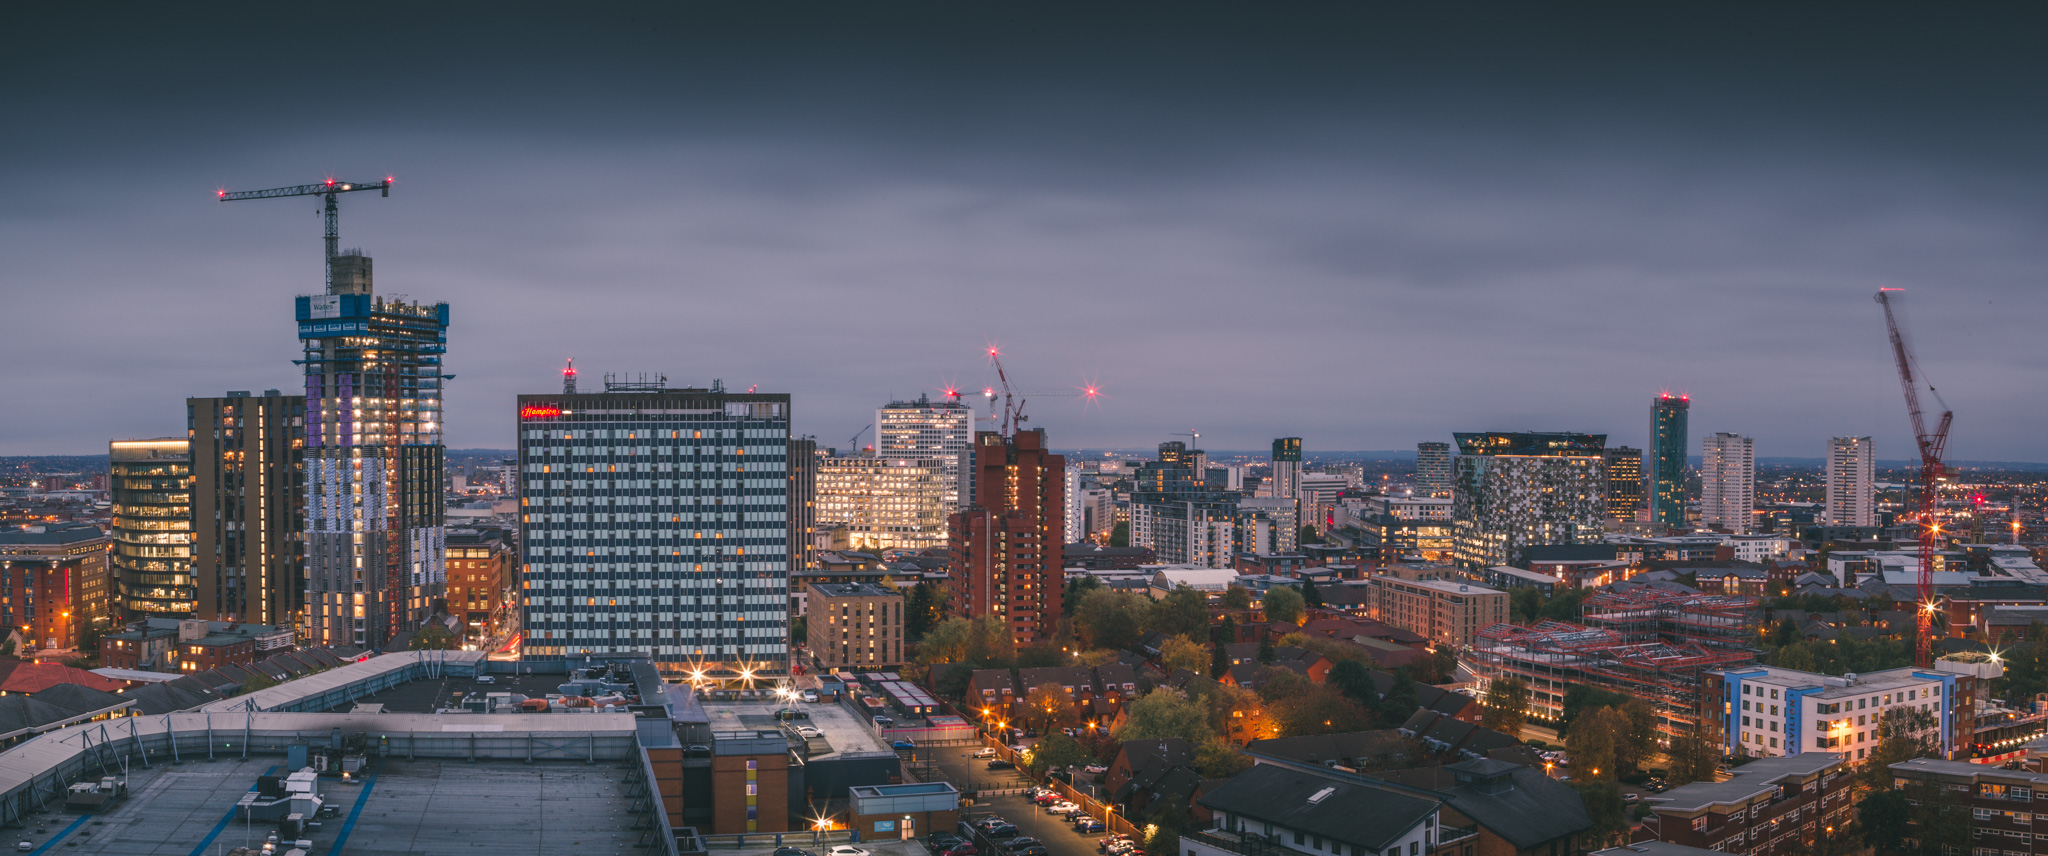 New developments as viewed from the roof of Park Regis, Birmingham